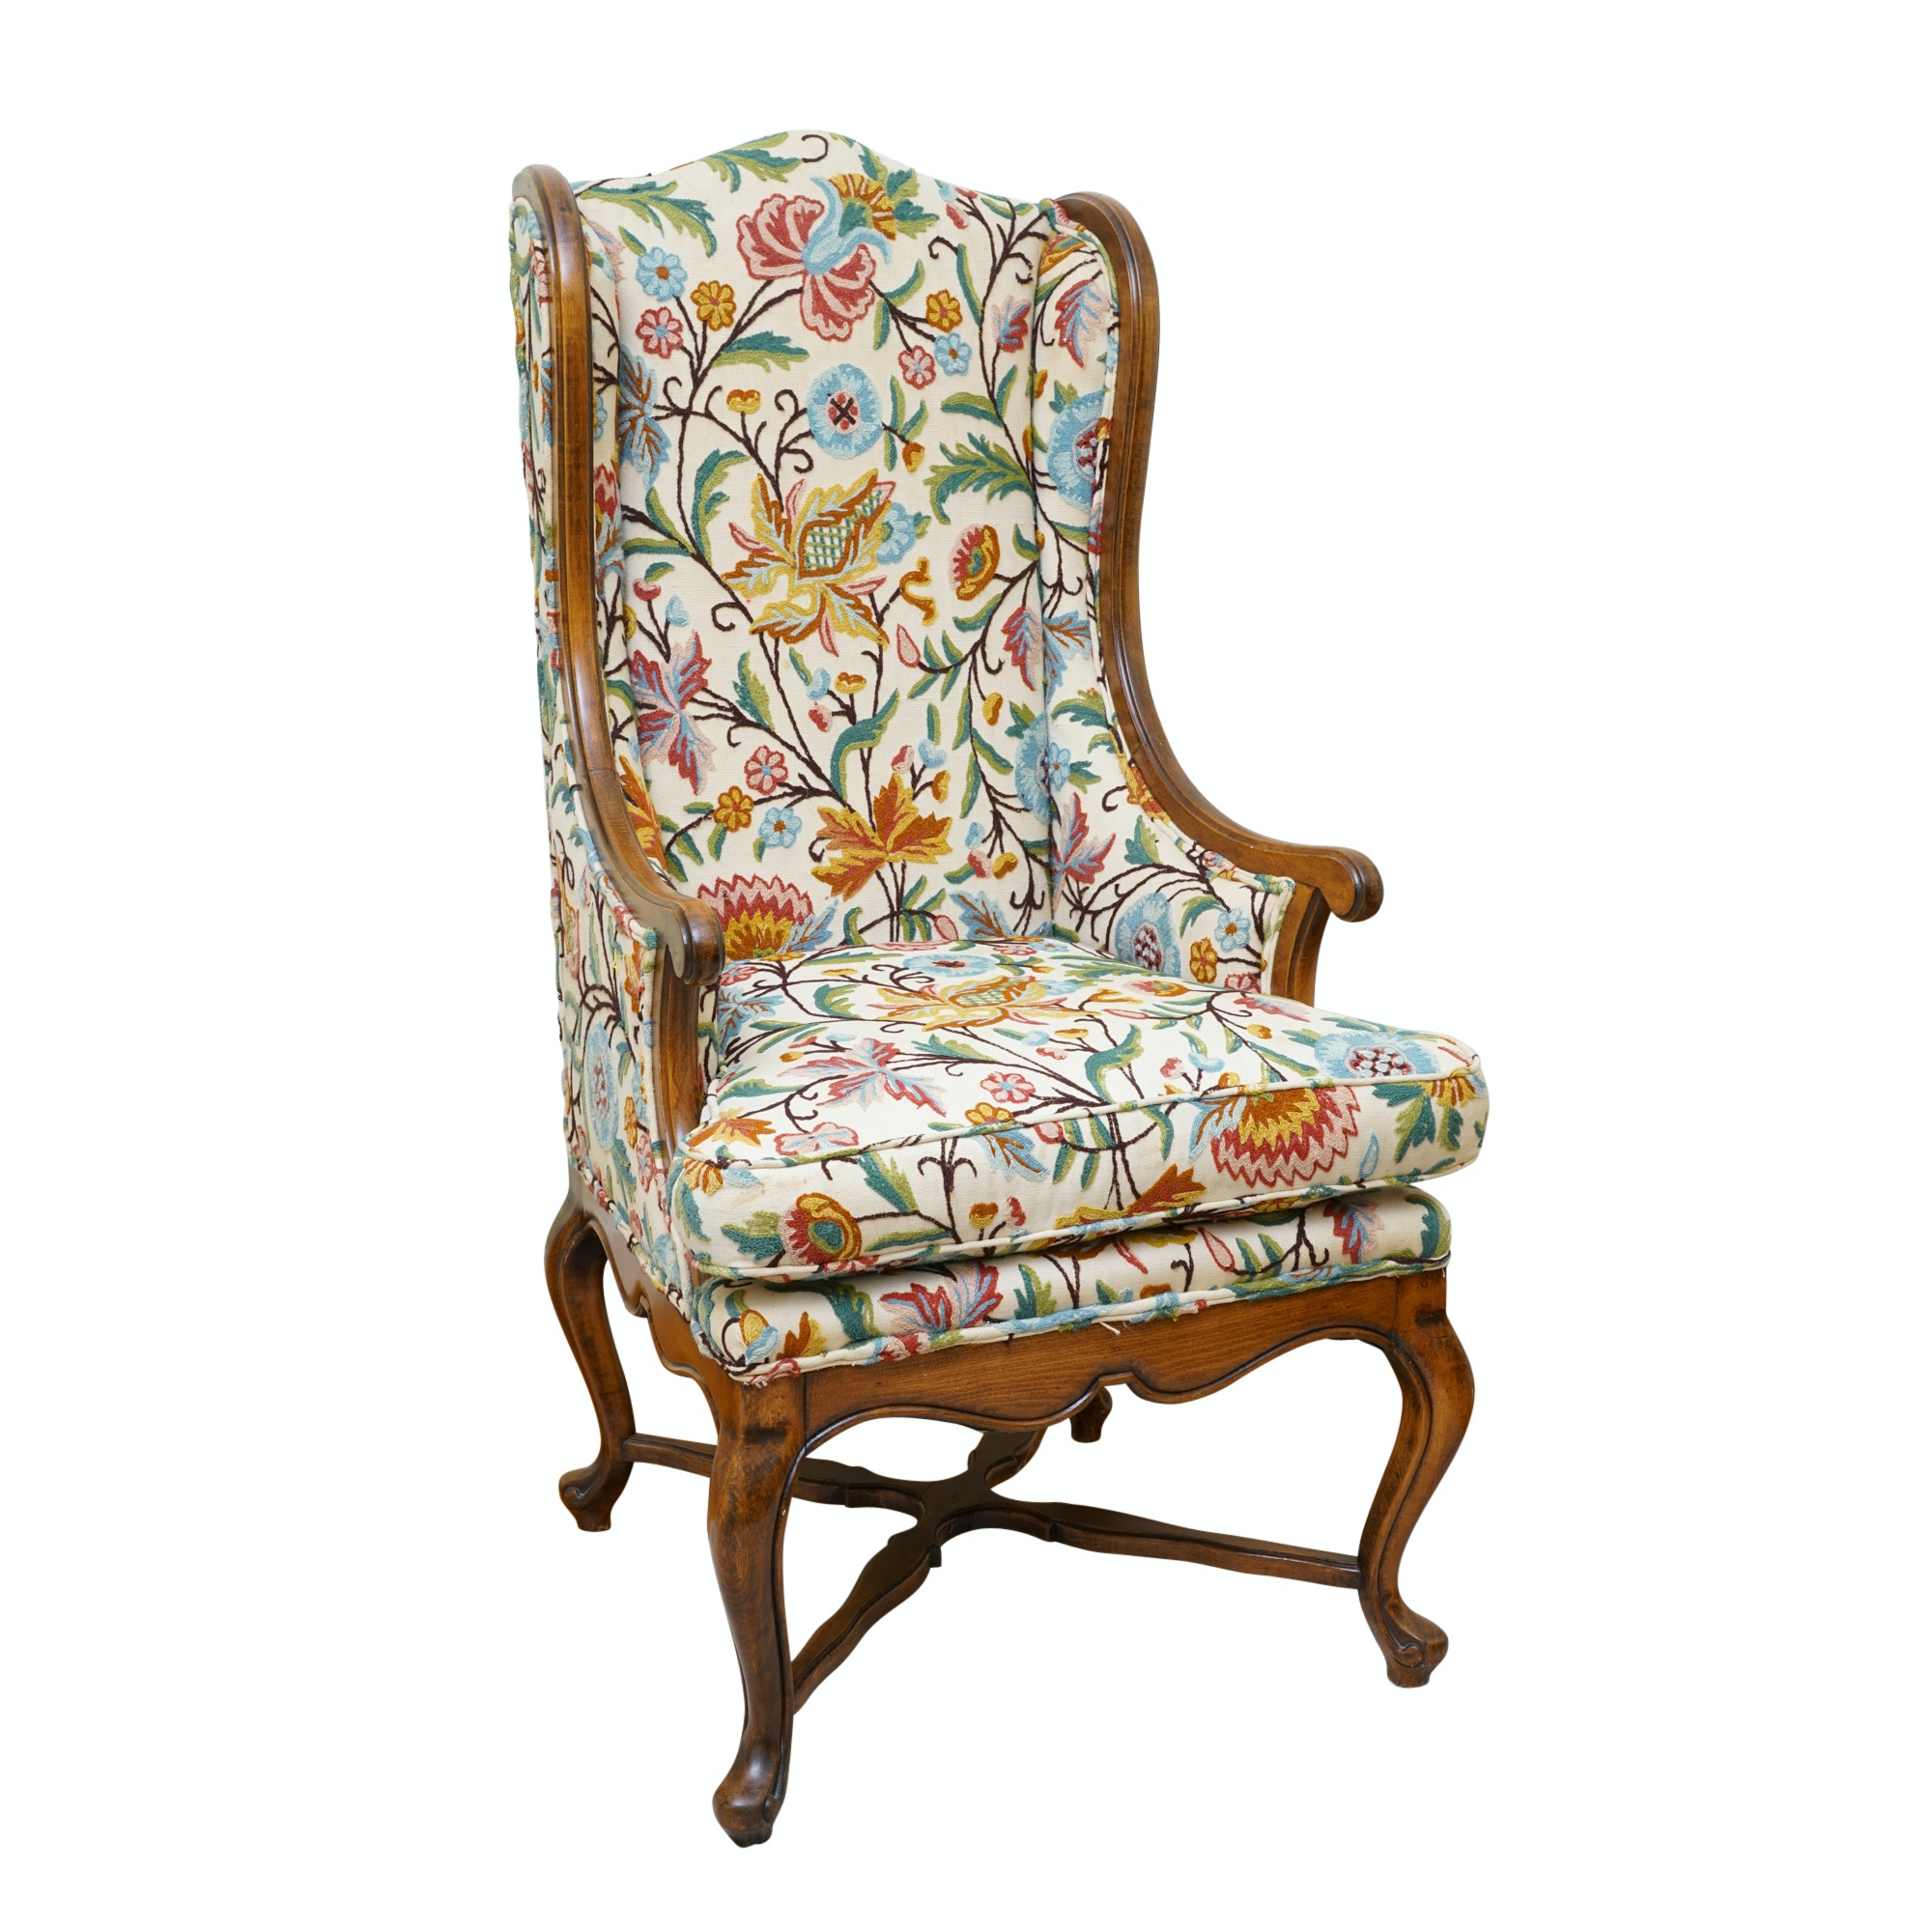 Queen Anne Style Crewelwork Upholstered Wingback Chair